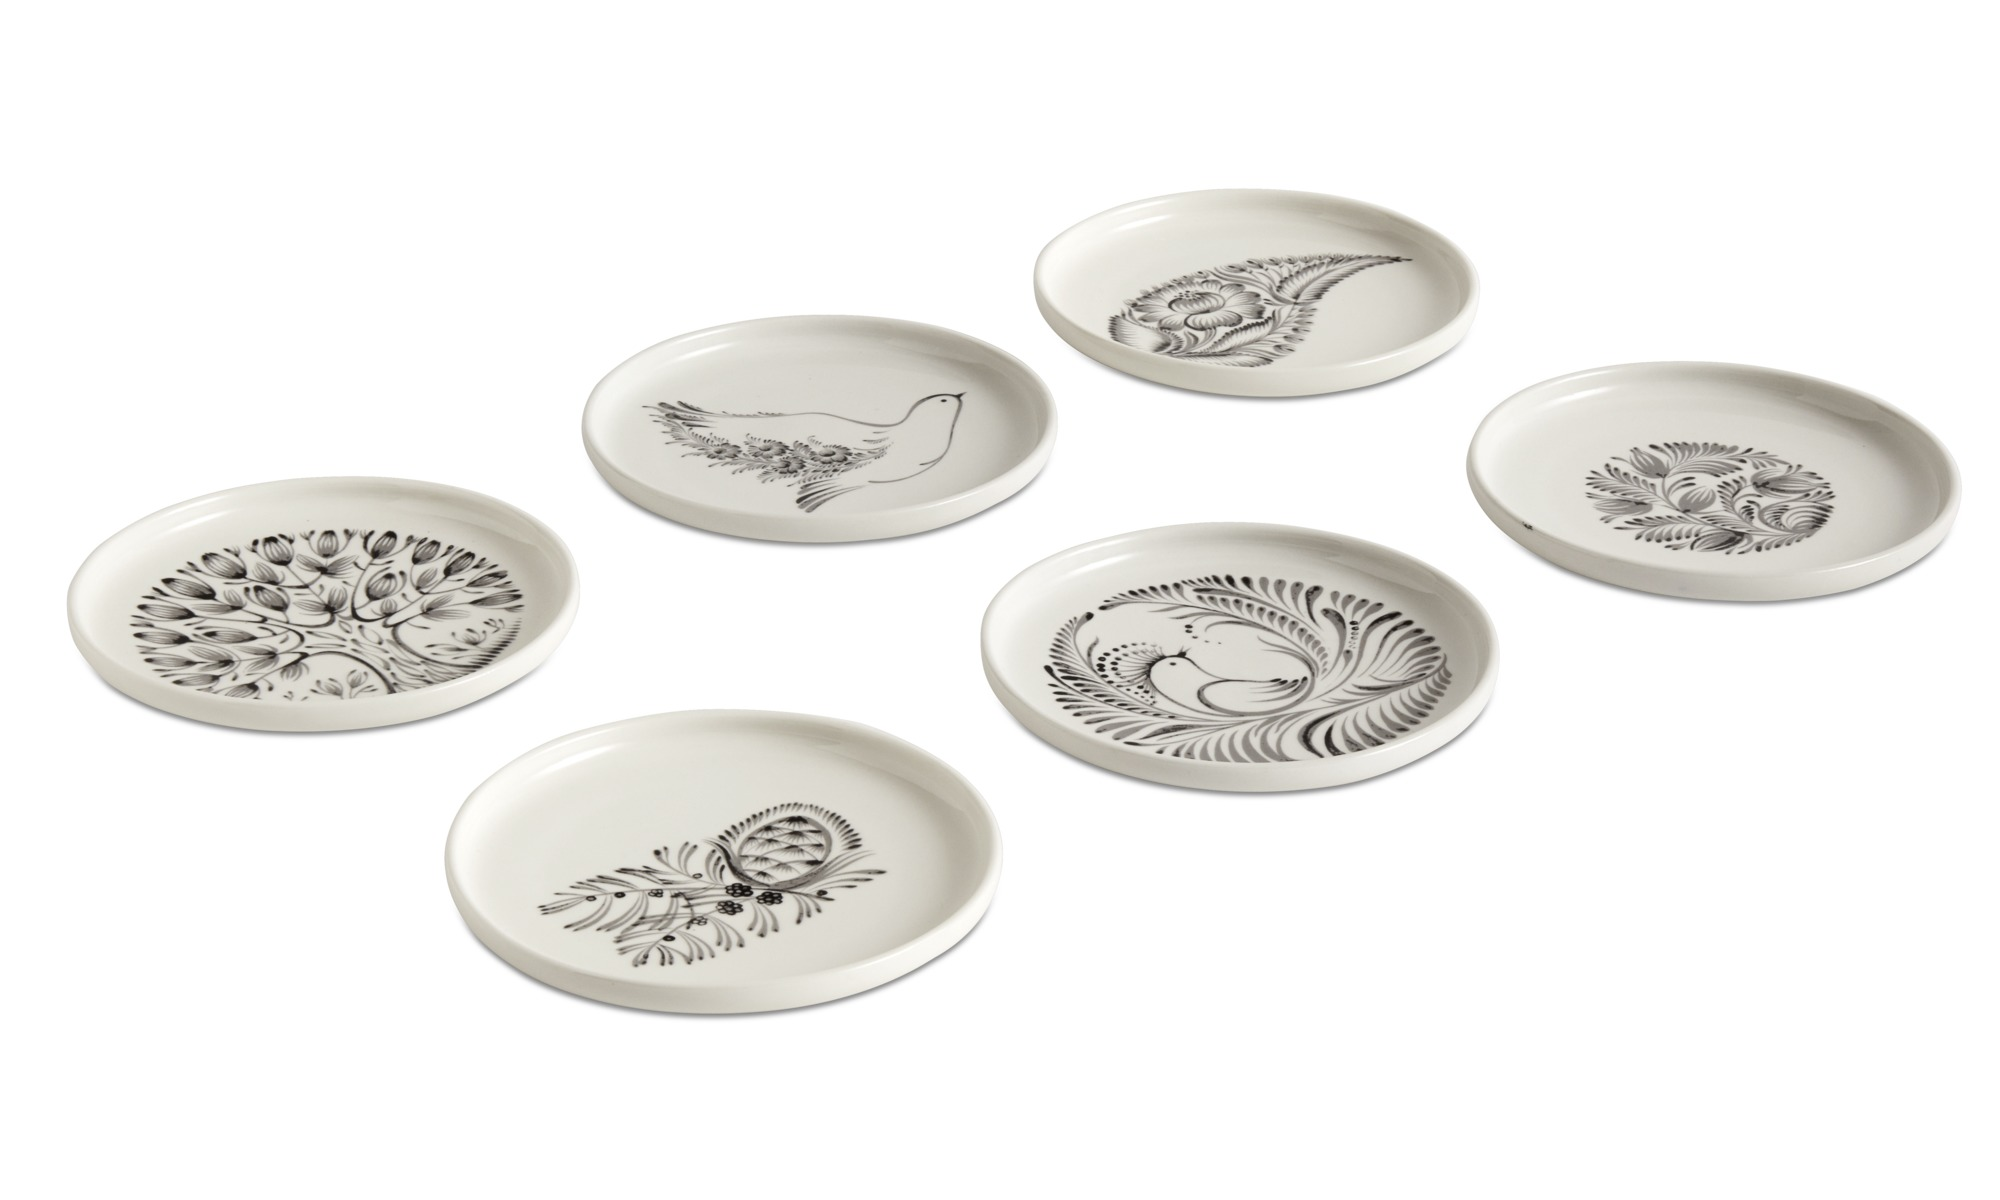 Dinnerware - nora breakfast plates with floral pattern - White - Ceramic ...  sc 1 st  BoConcept : pattern dinnerware - pezcame.com